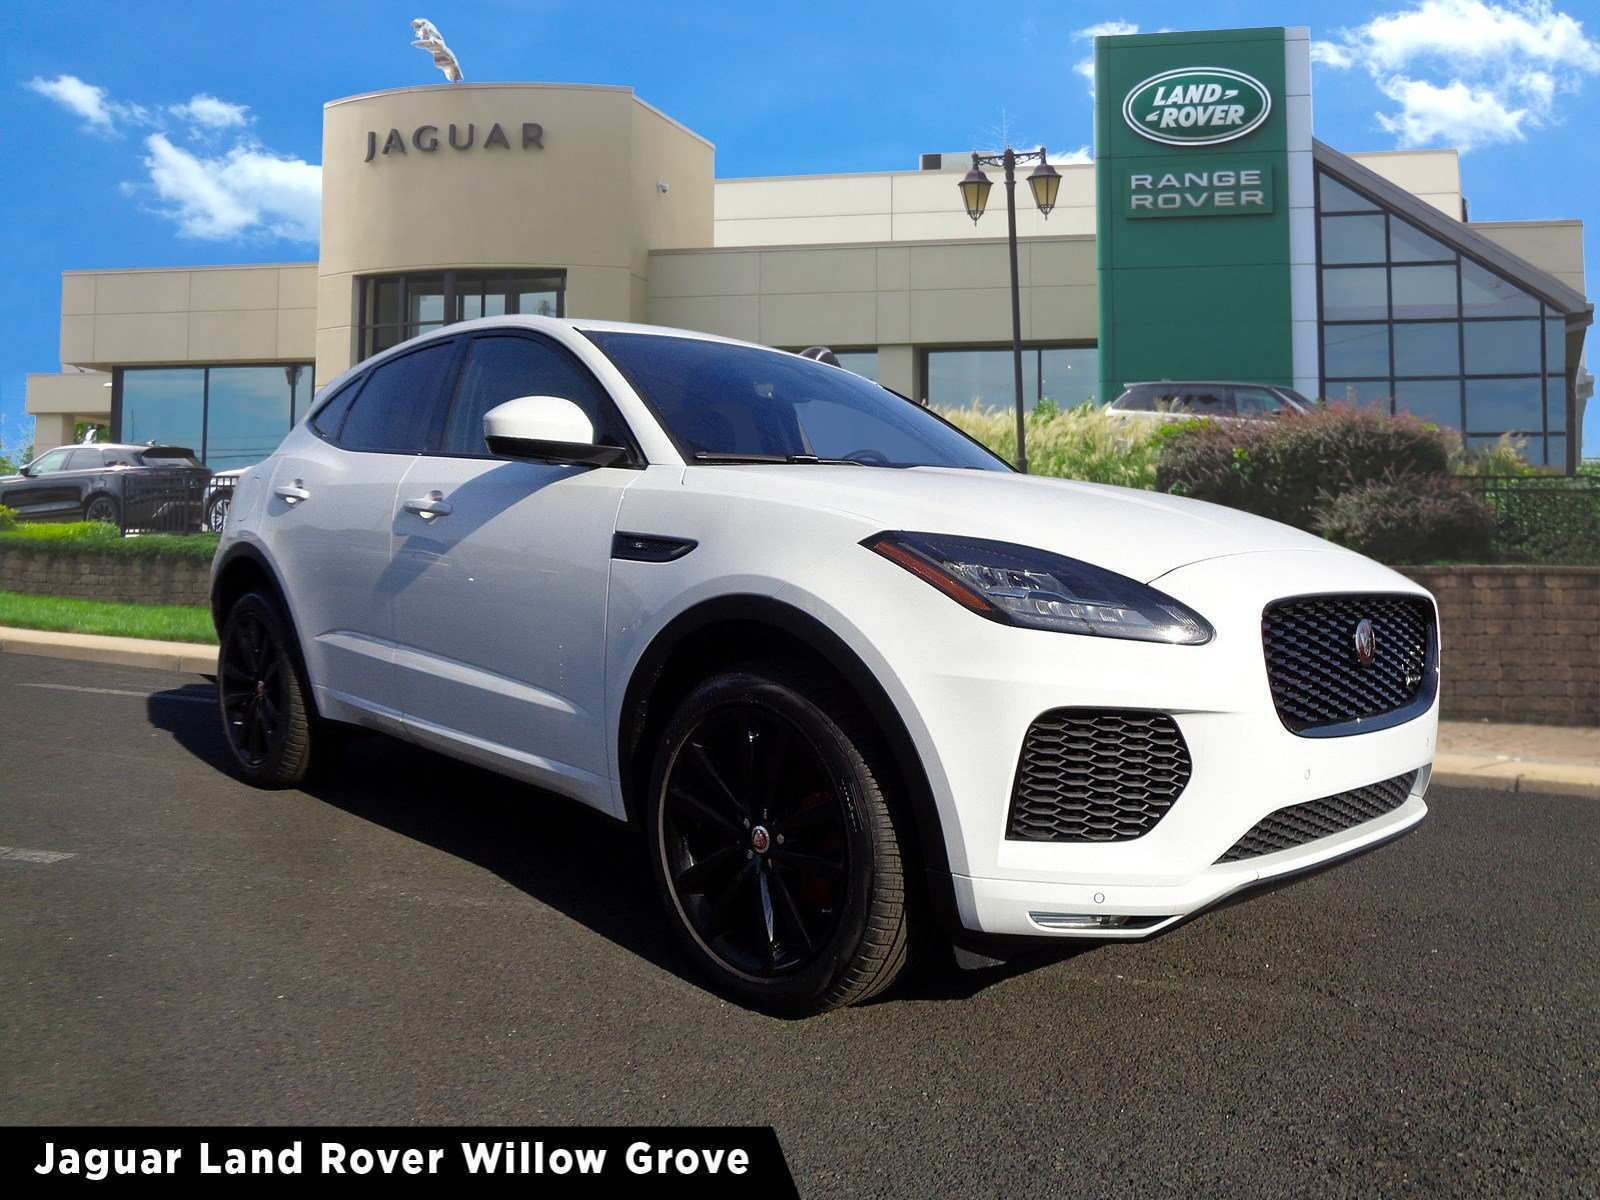 68 Concept of E Pace Jaguar 2019 Price and Review with E Pace Jaguar 2019